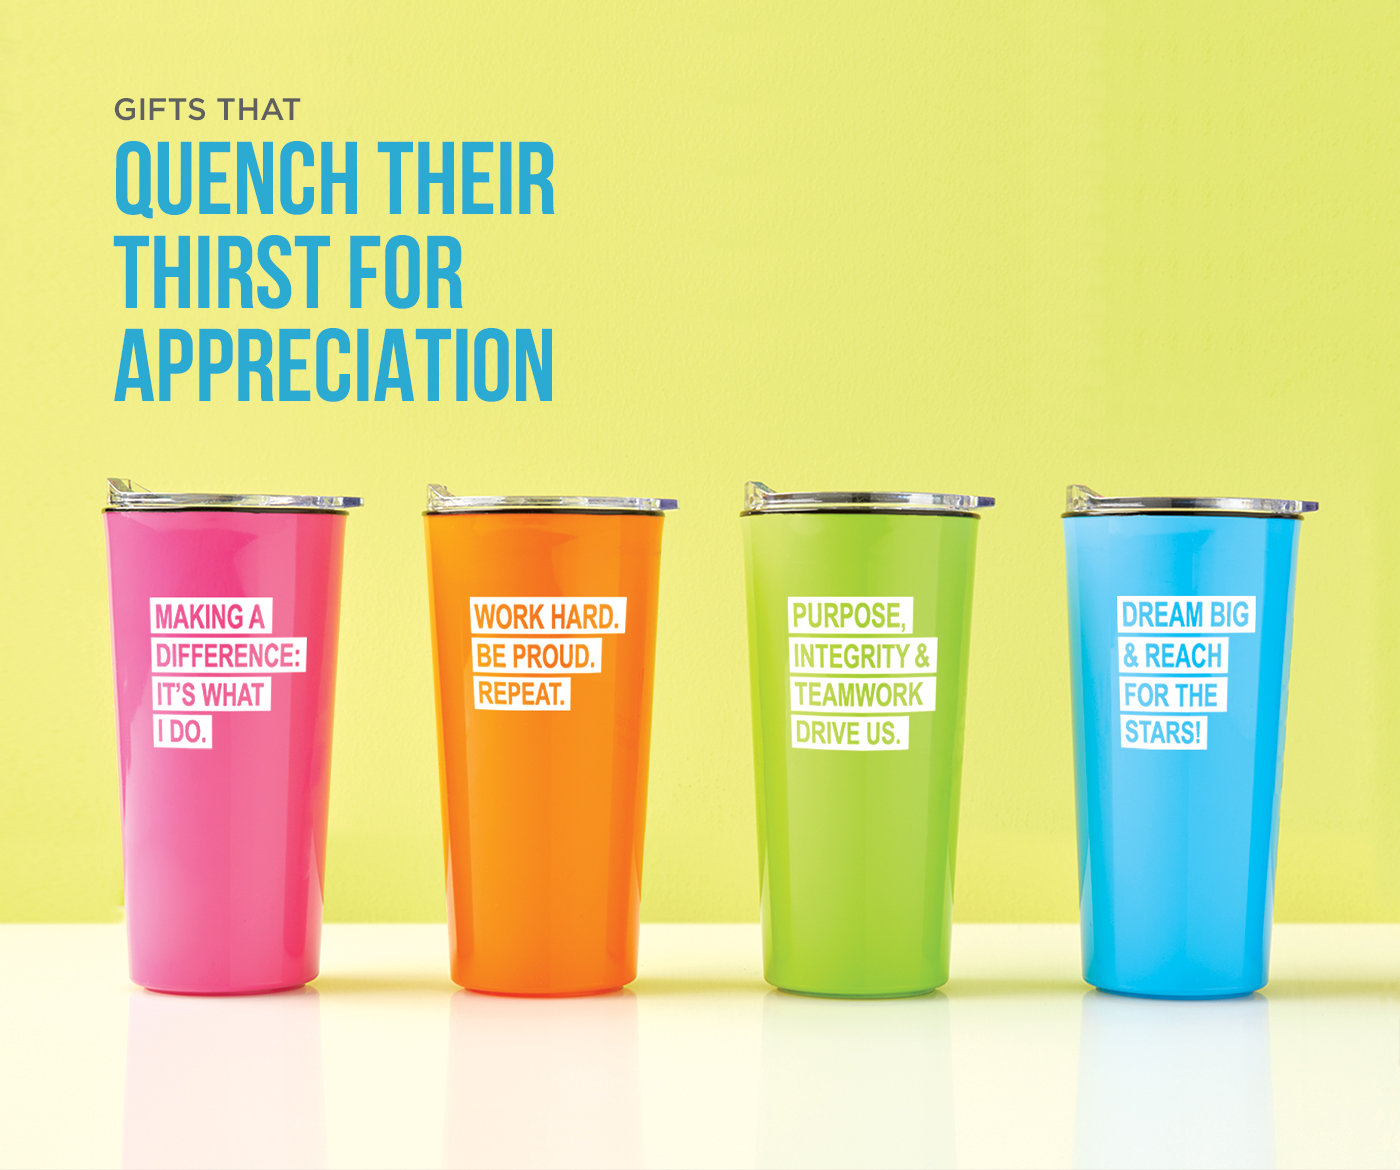 Shop Drinkware Gifts that quench their thirst with Baudville.com